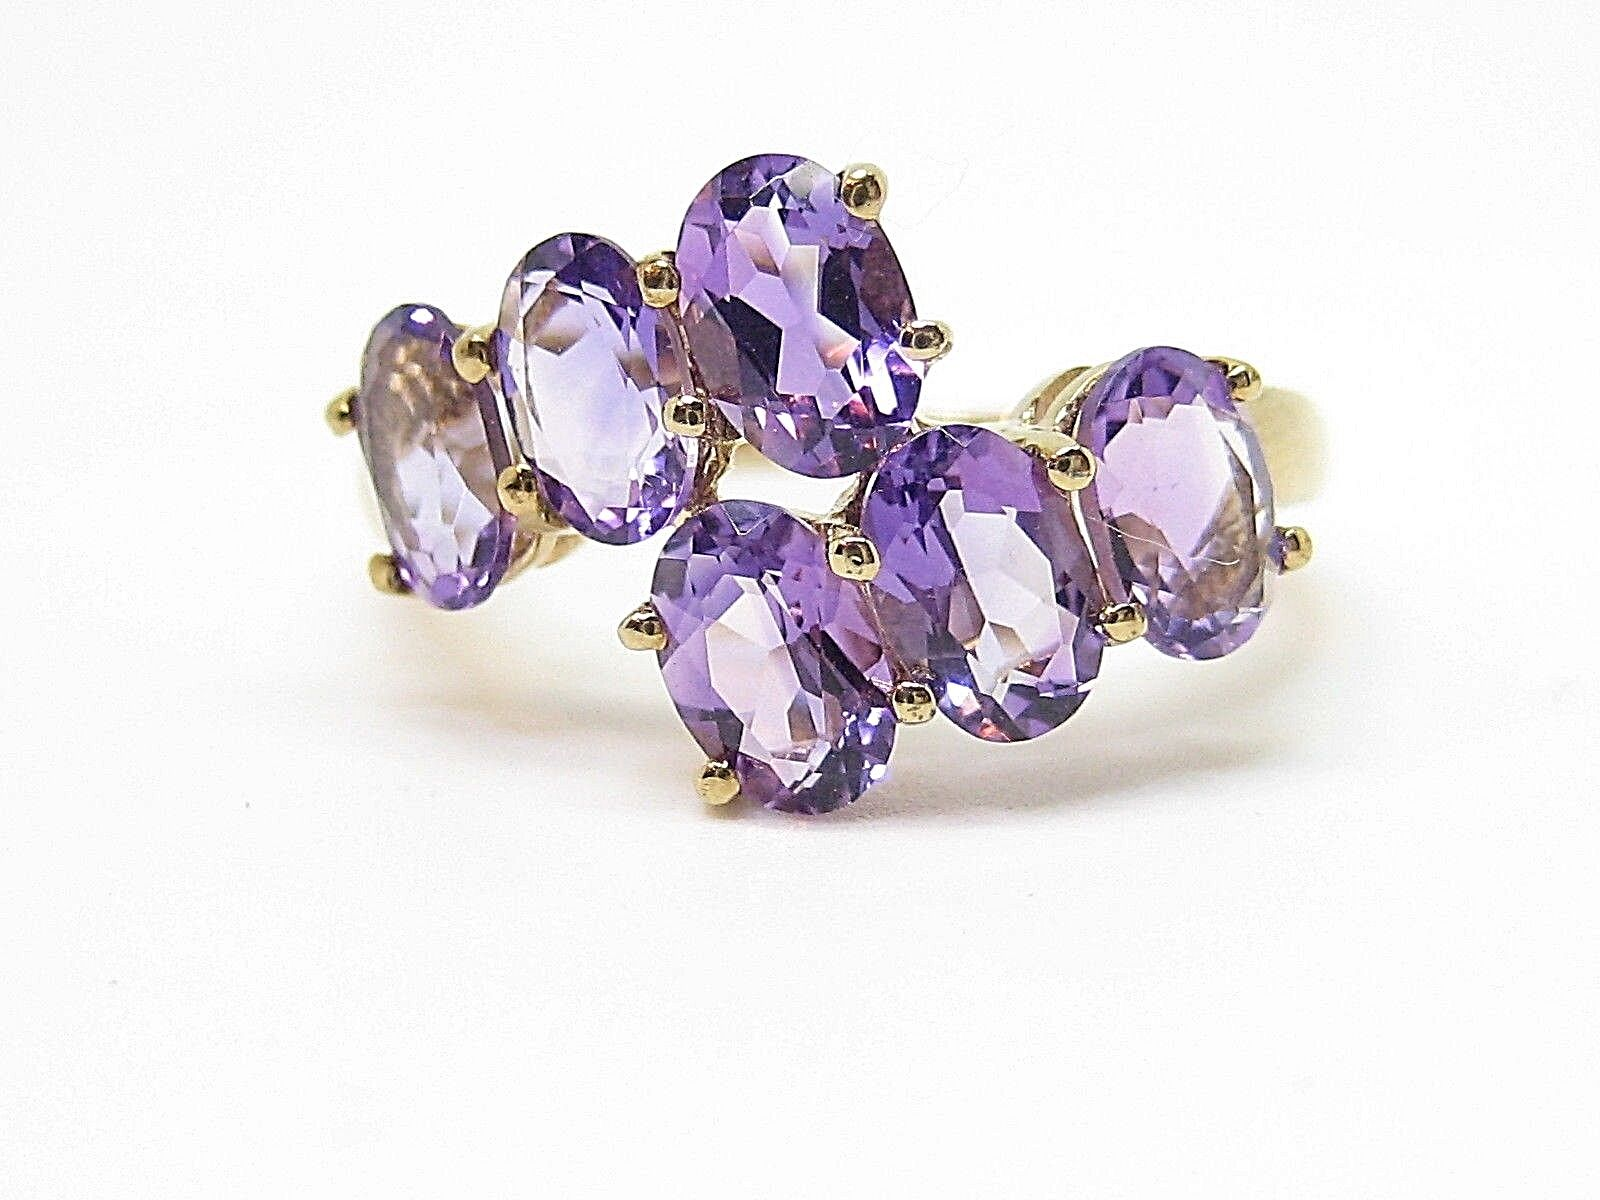 Amethyst 2.40ct. Yellow gold Hallmark 9Carat Ring Size N 1 2